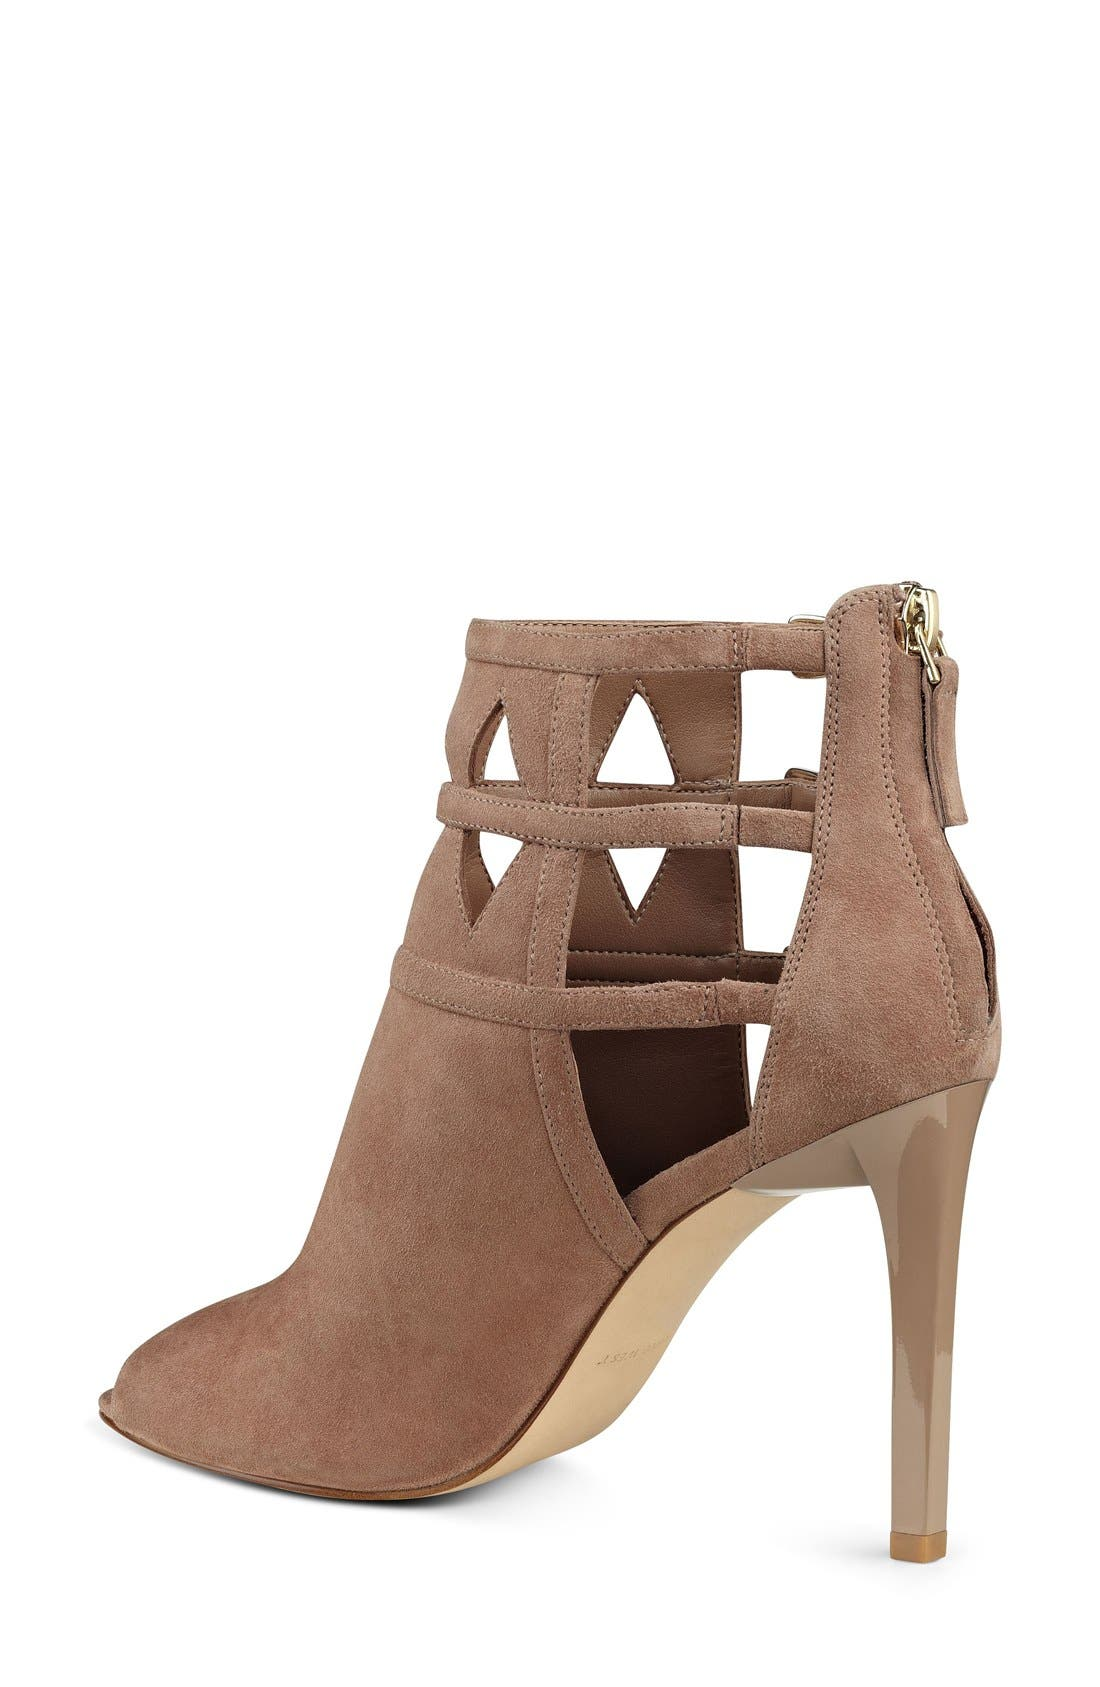 Alternate Image 2  - Nine West 'Laulani' Cutout Peep Toe Bootie (Women)